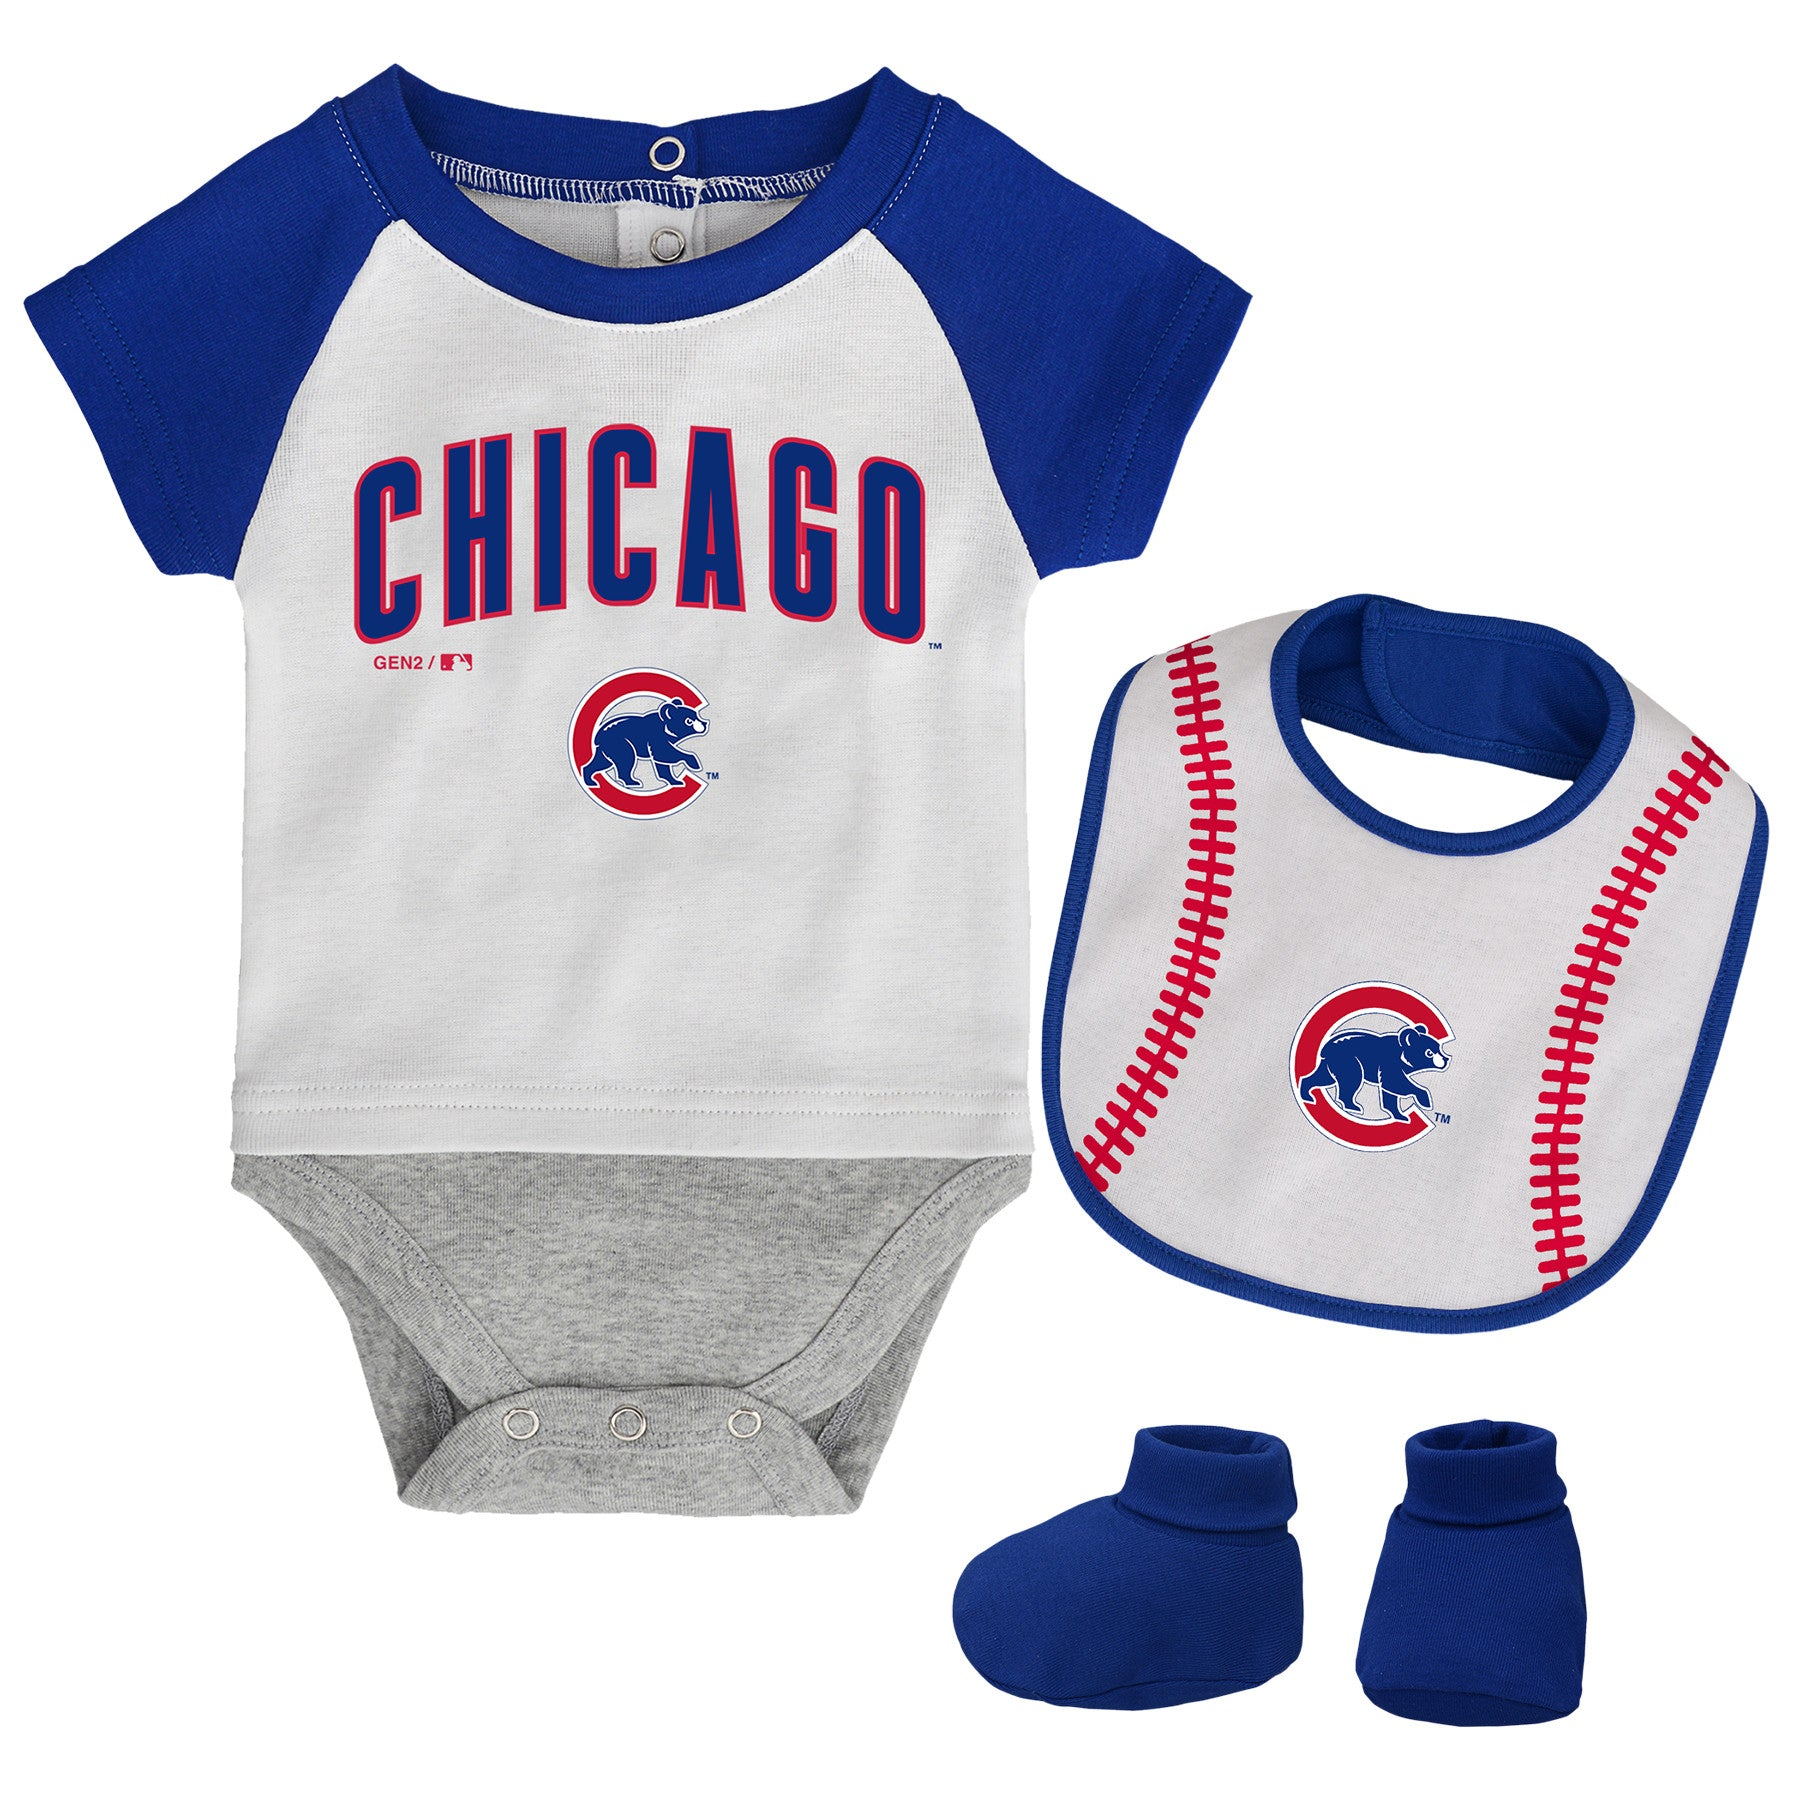 super popular 5a295 75550 Chicago Cubs Baby Outfit